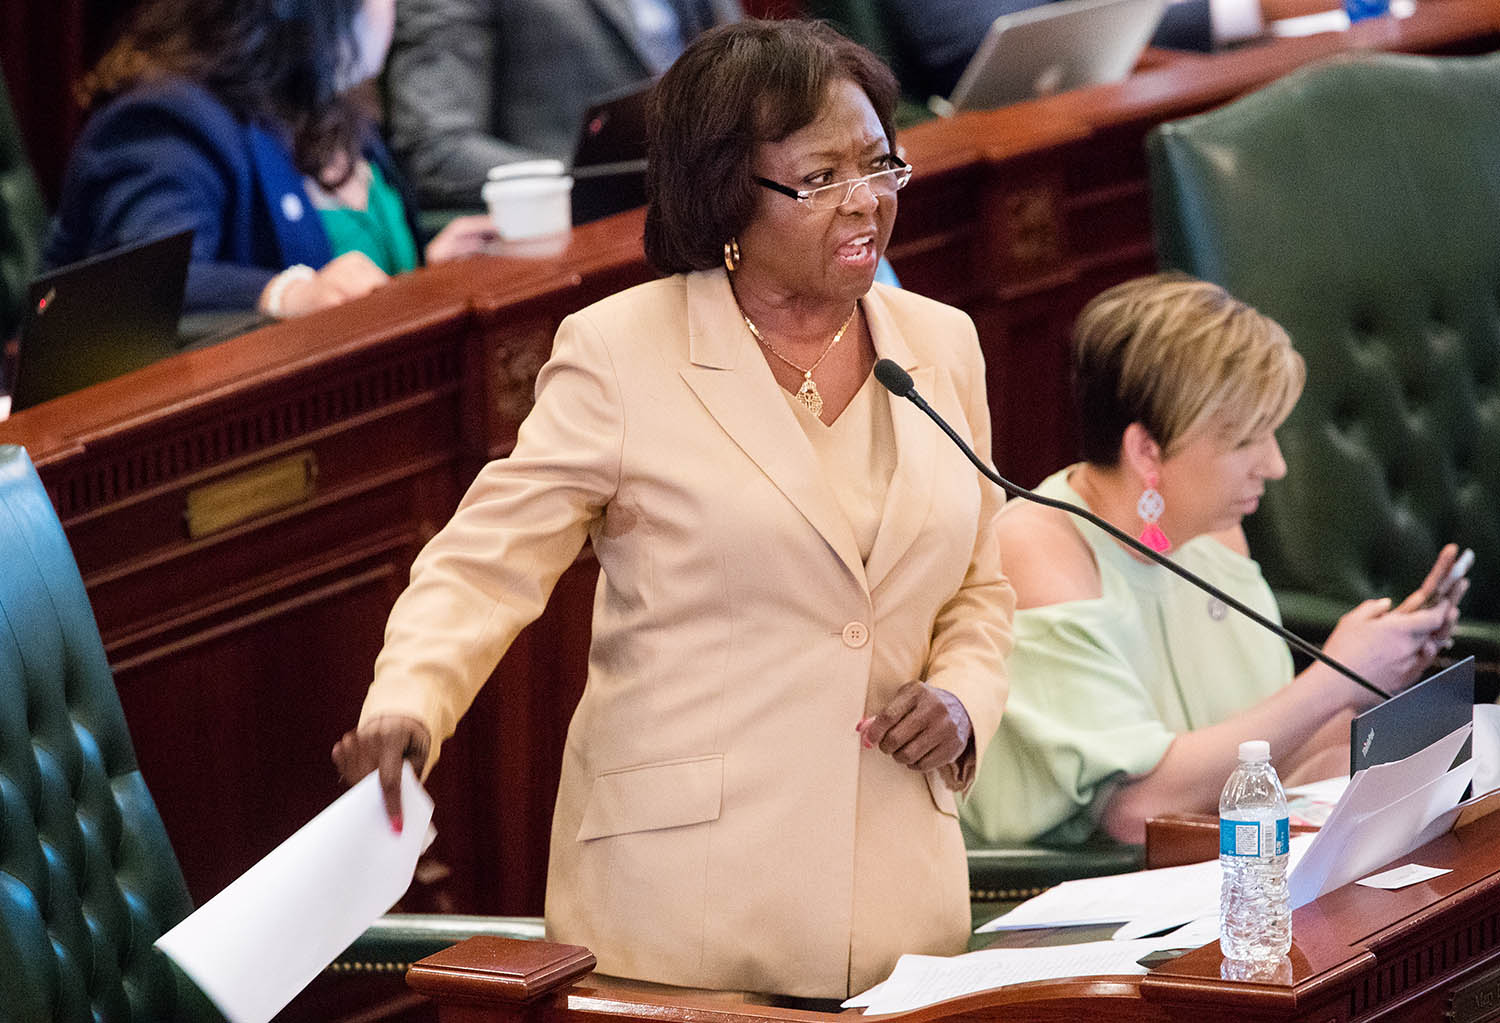 Illinois state Rep. Mary Flowers, D-Chicago, speaks against the bill to legalize recreational marijuana use in the Illinois House chambers Friday, May 31, 2019. Flowers voted against the bill that passed the House 66-47. [Ted Schurter/The State Journal-Register]